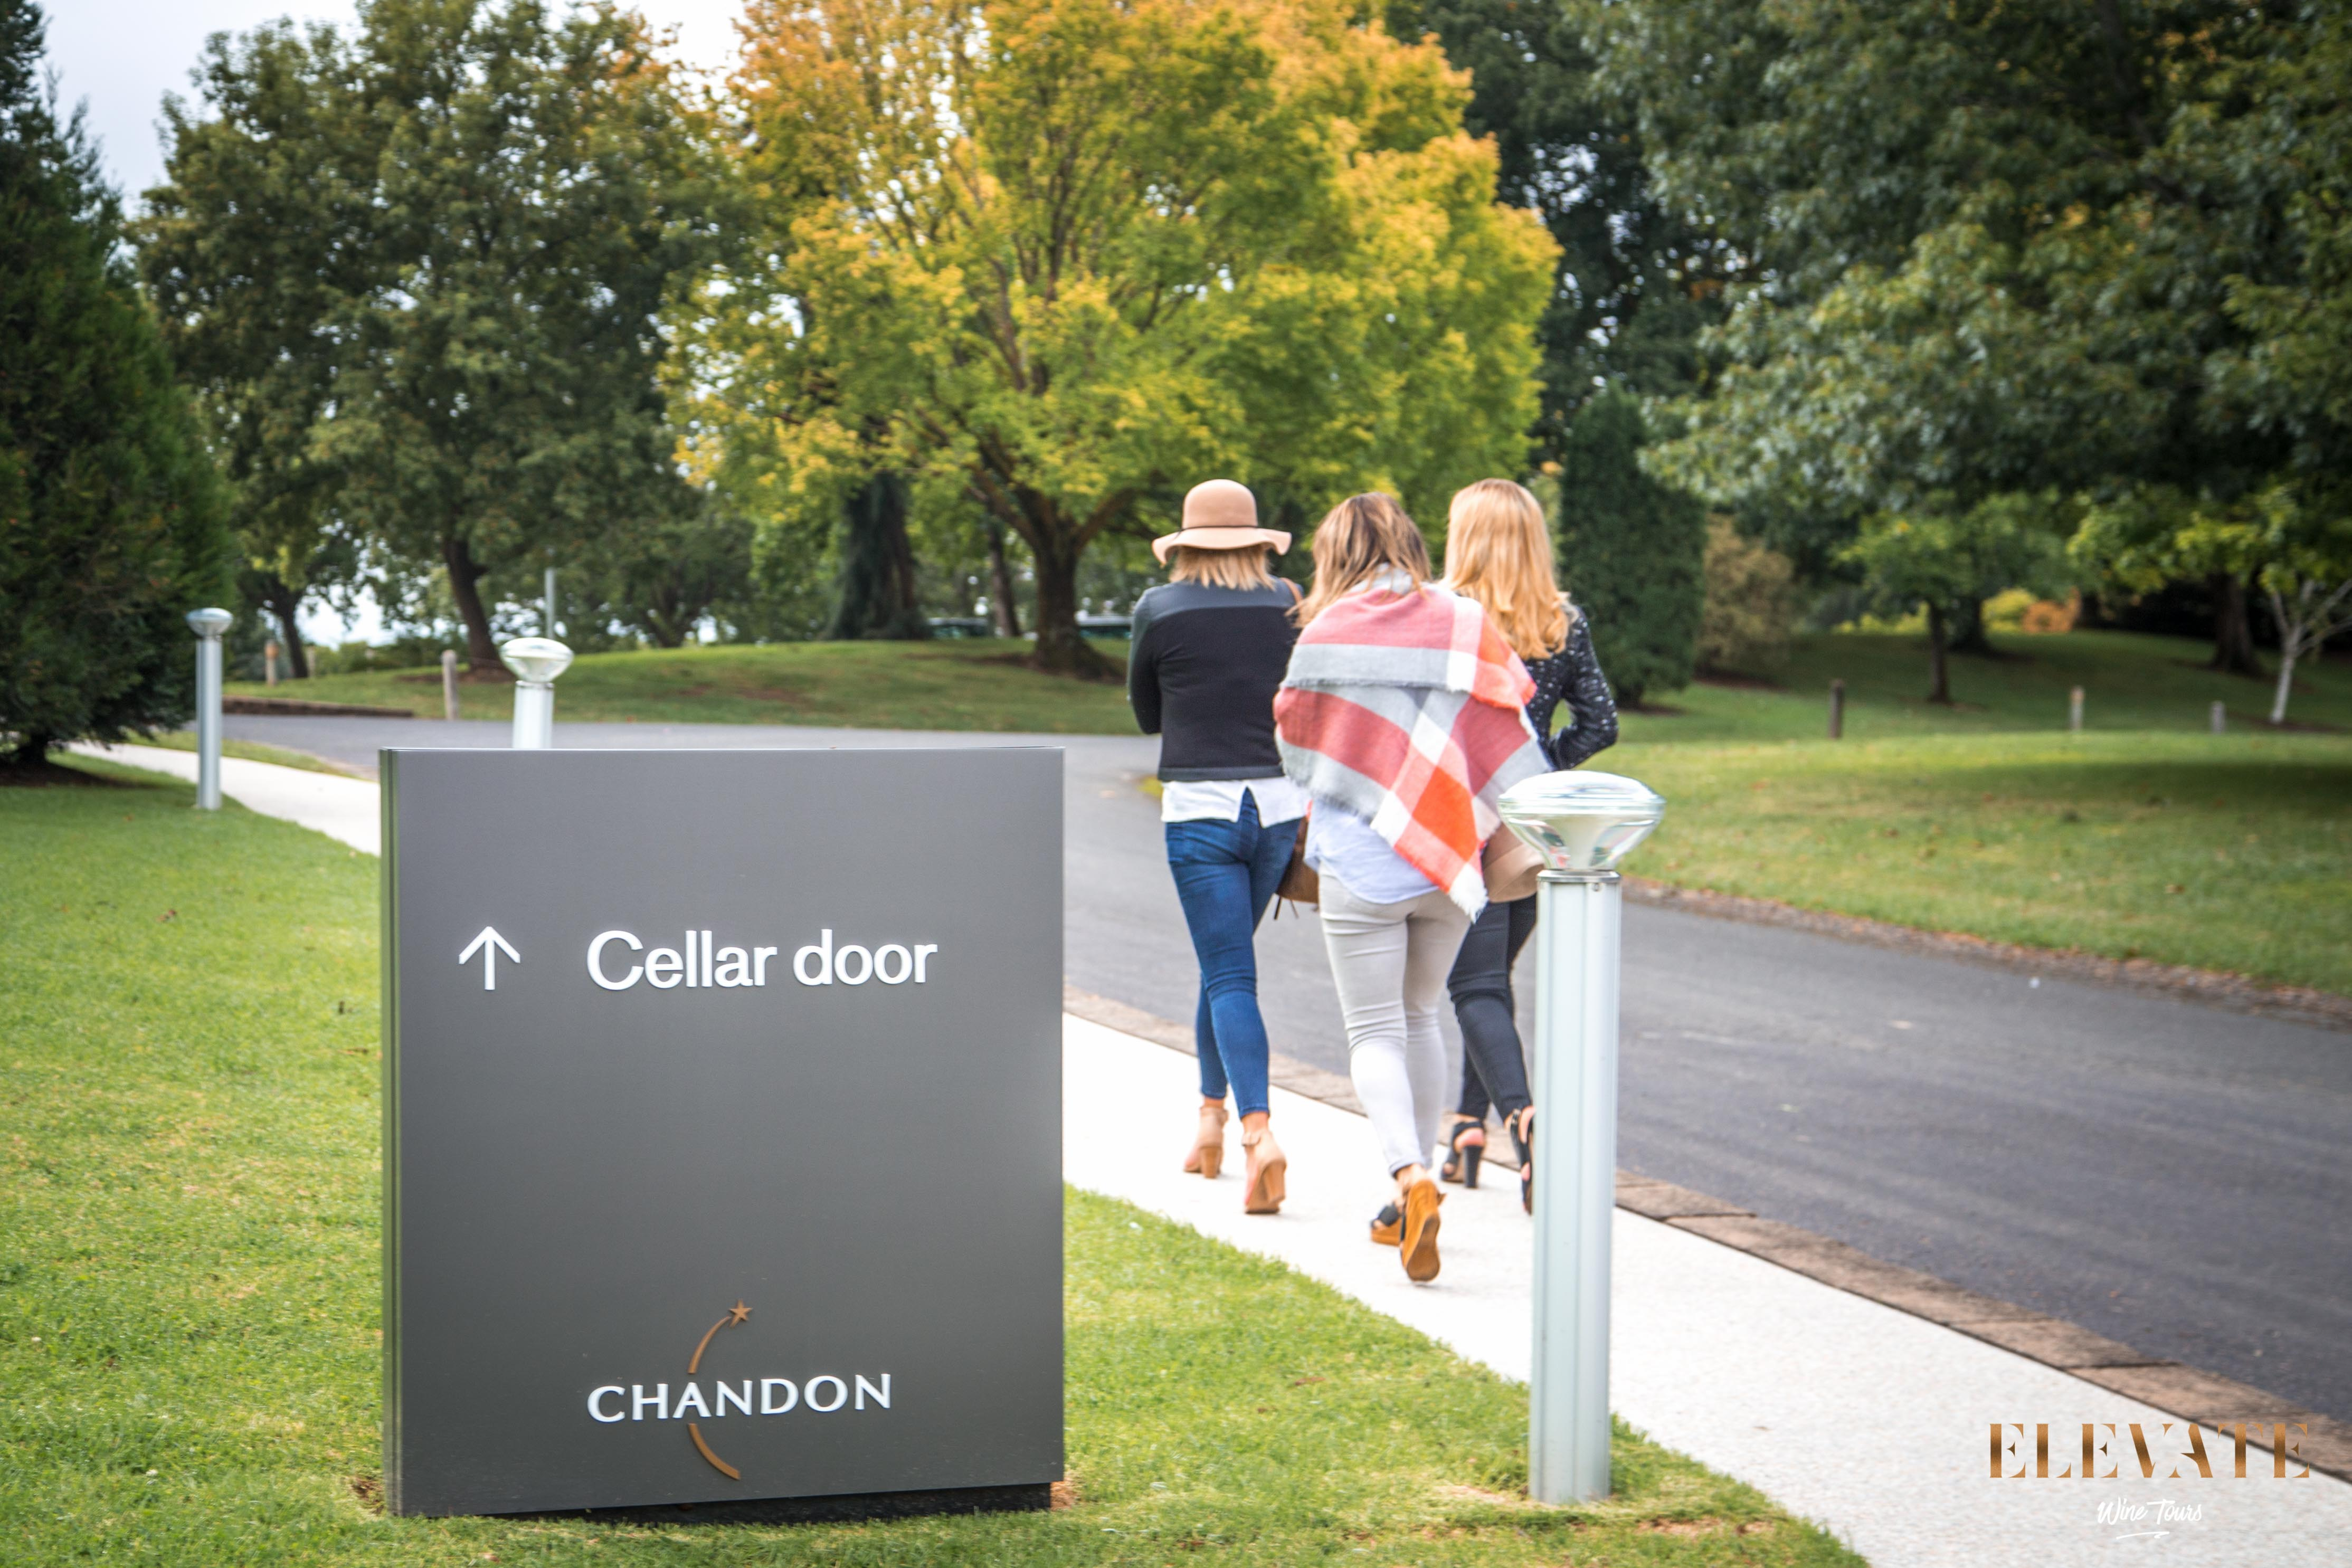 Walking towards Chandon cellar door